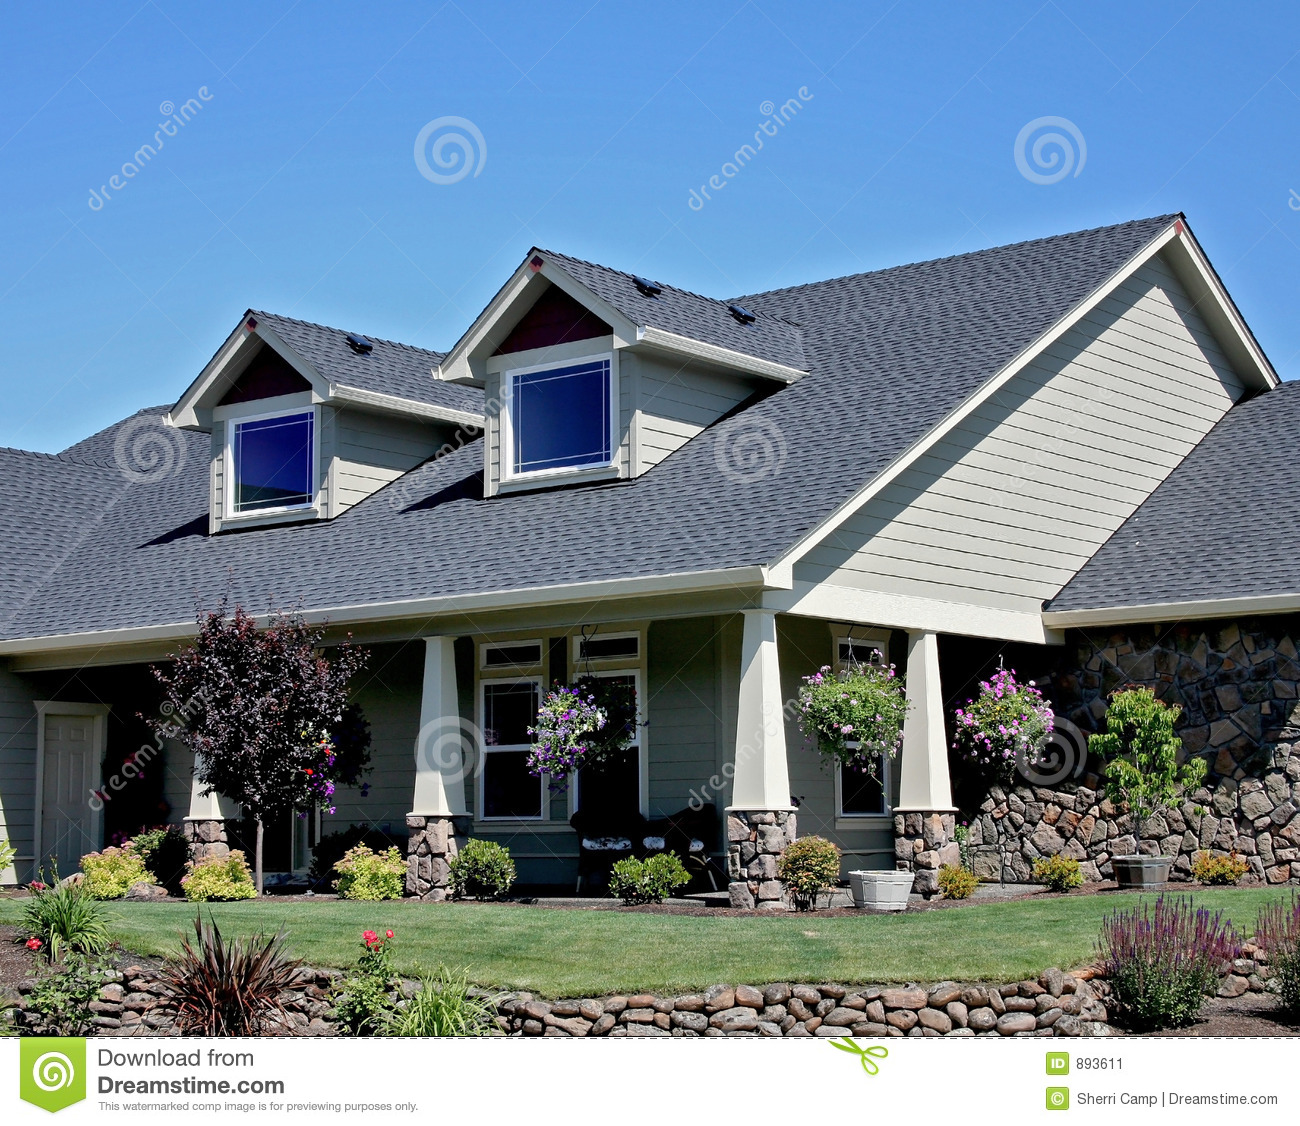 American craftsman style house stock image image 893611 for American craftsman homes